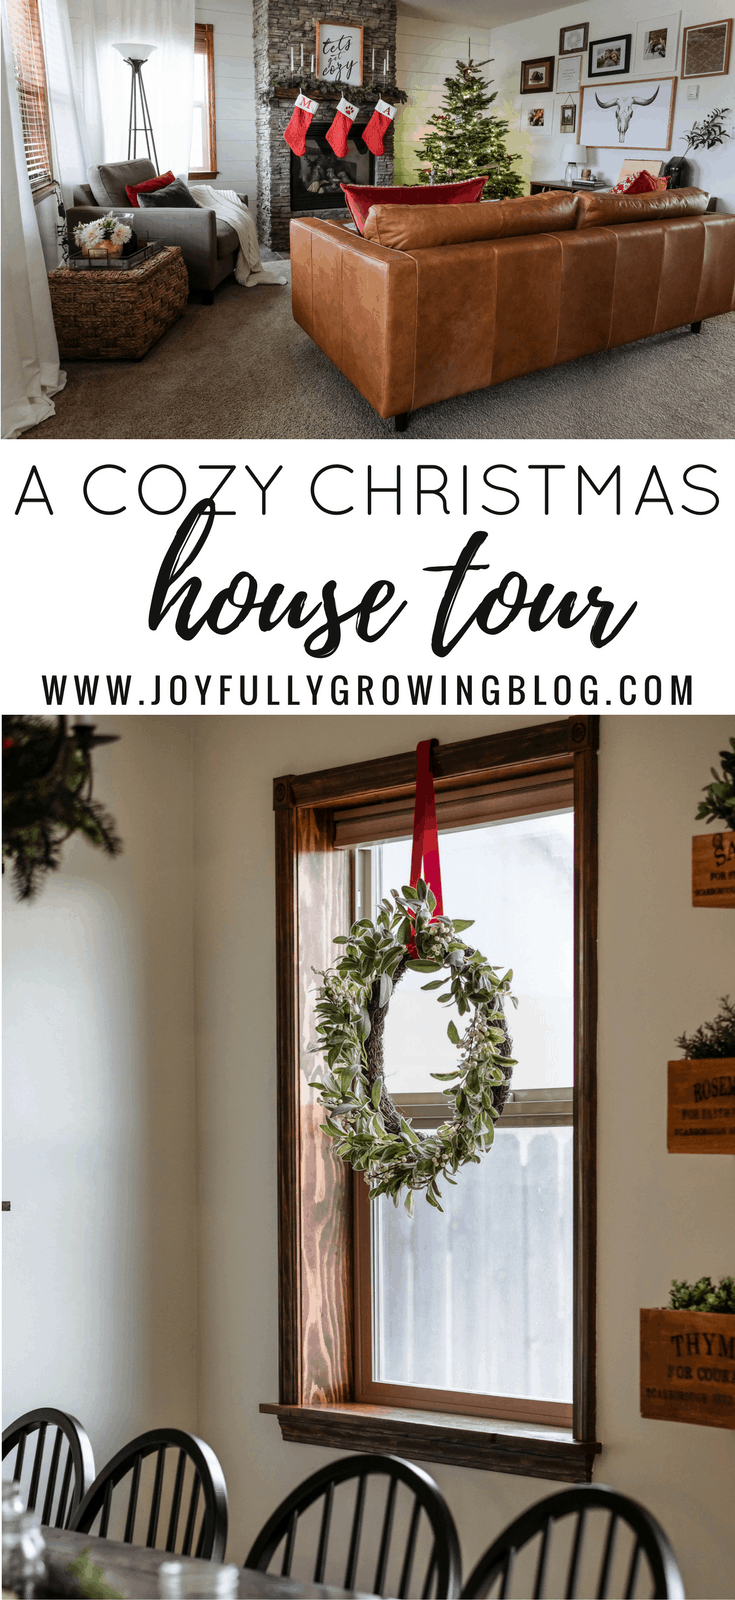 Cozy Christmas House Tour